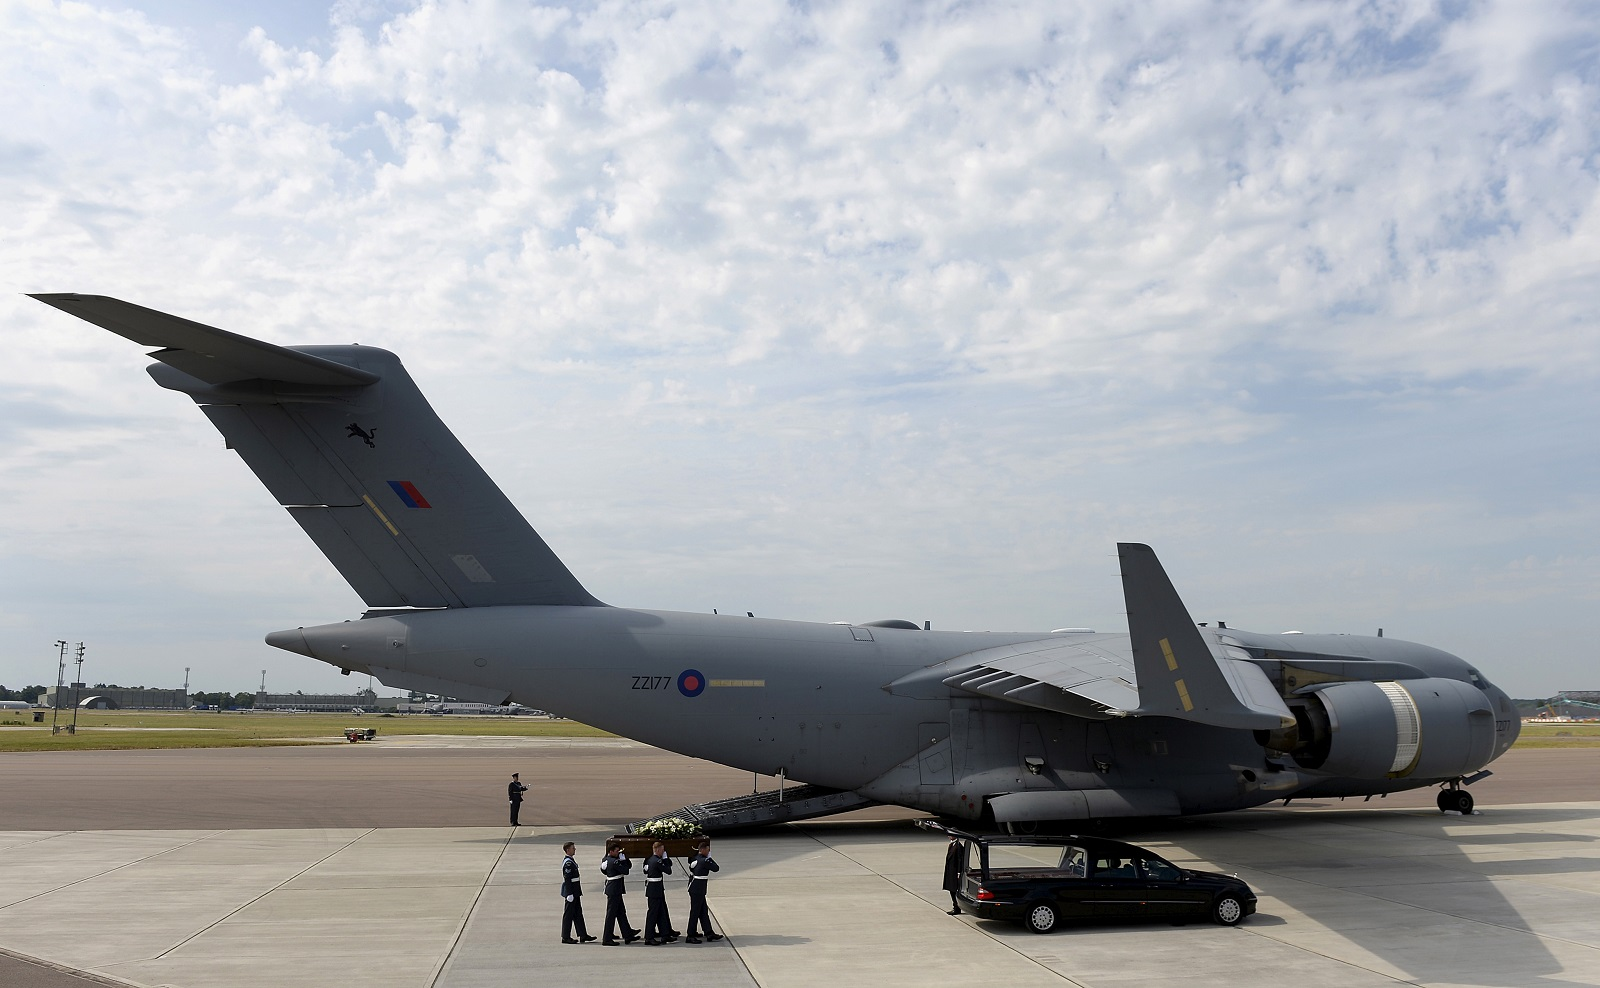 Repatriation at RAF Brize Nprton